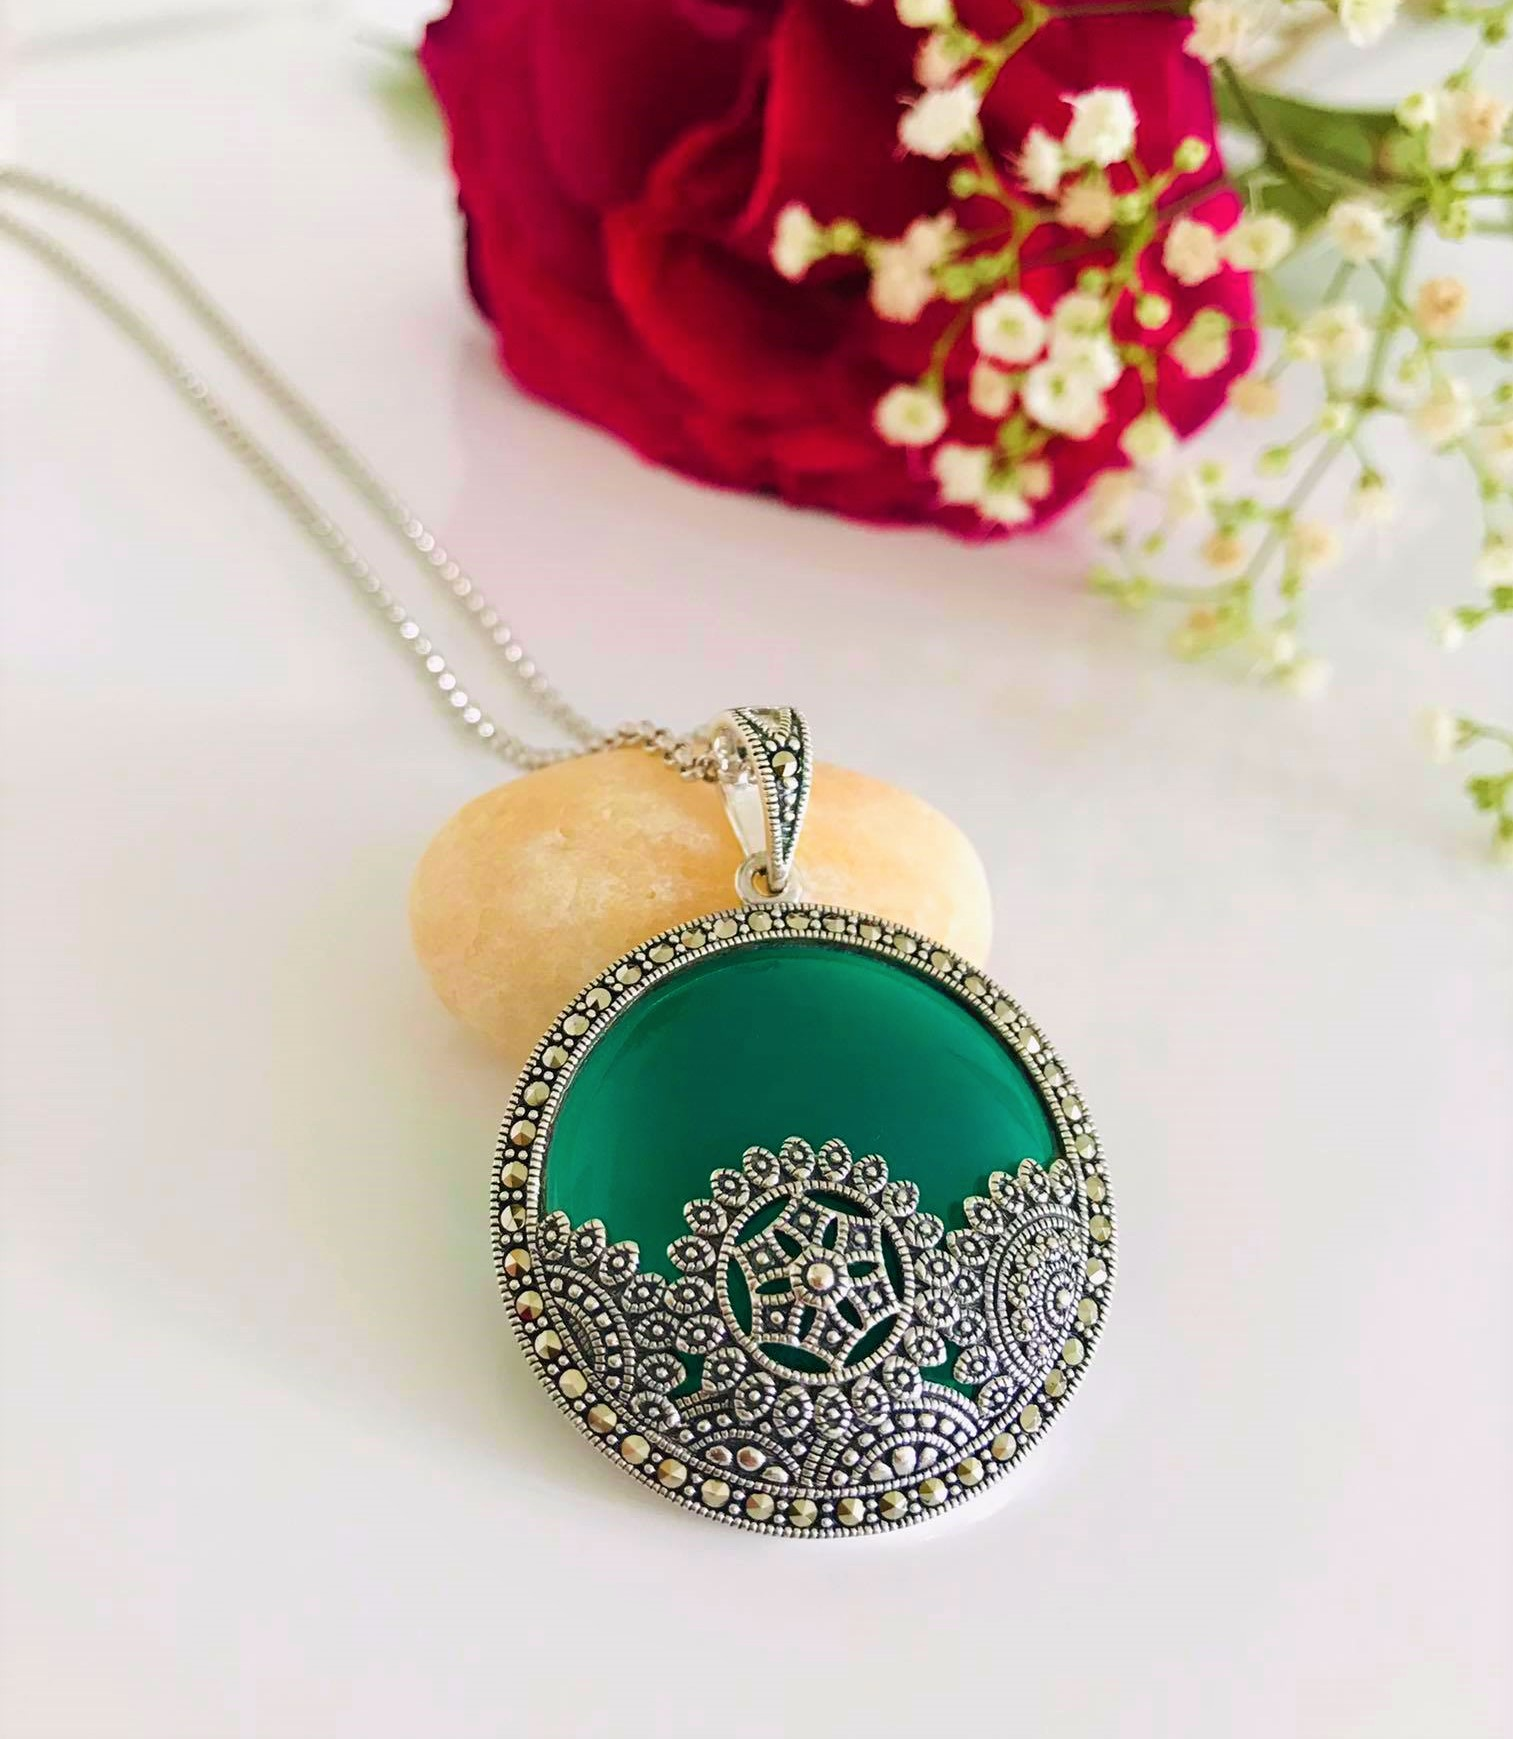 Large Stunning Round Green Onyx and Marcasite  Arabesque overlay Silver Pendant Necklace Image